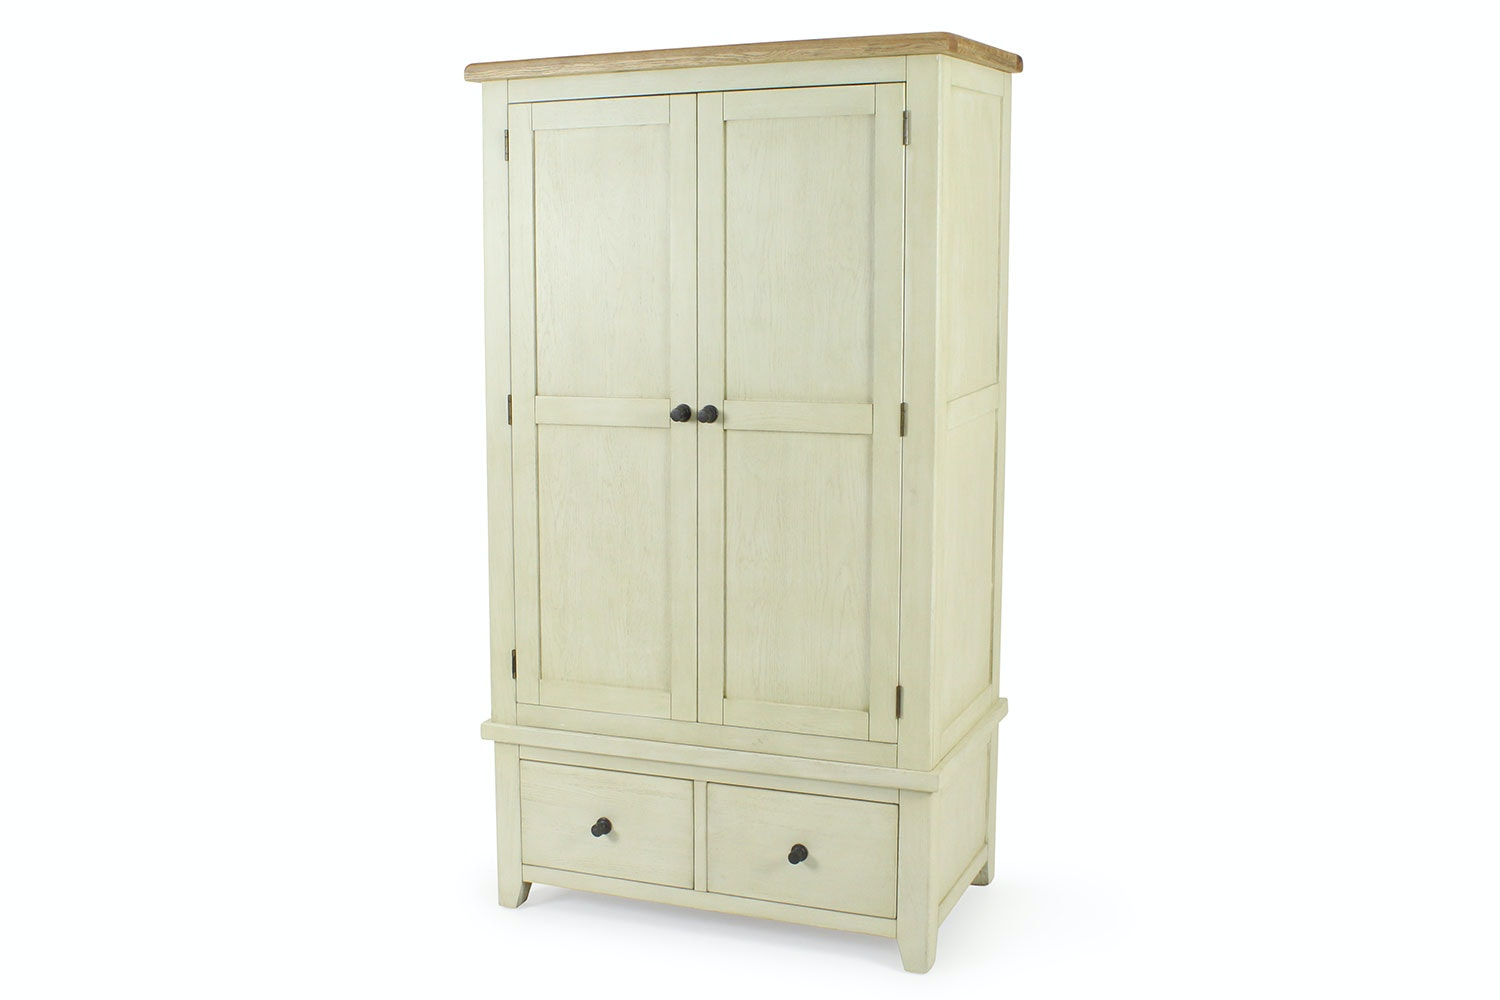 Mansfield Wardrobe by Debonaire Furniture